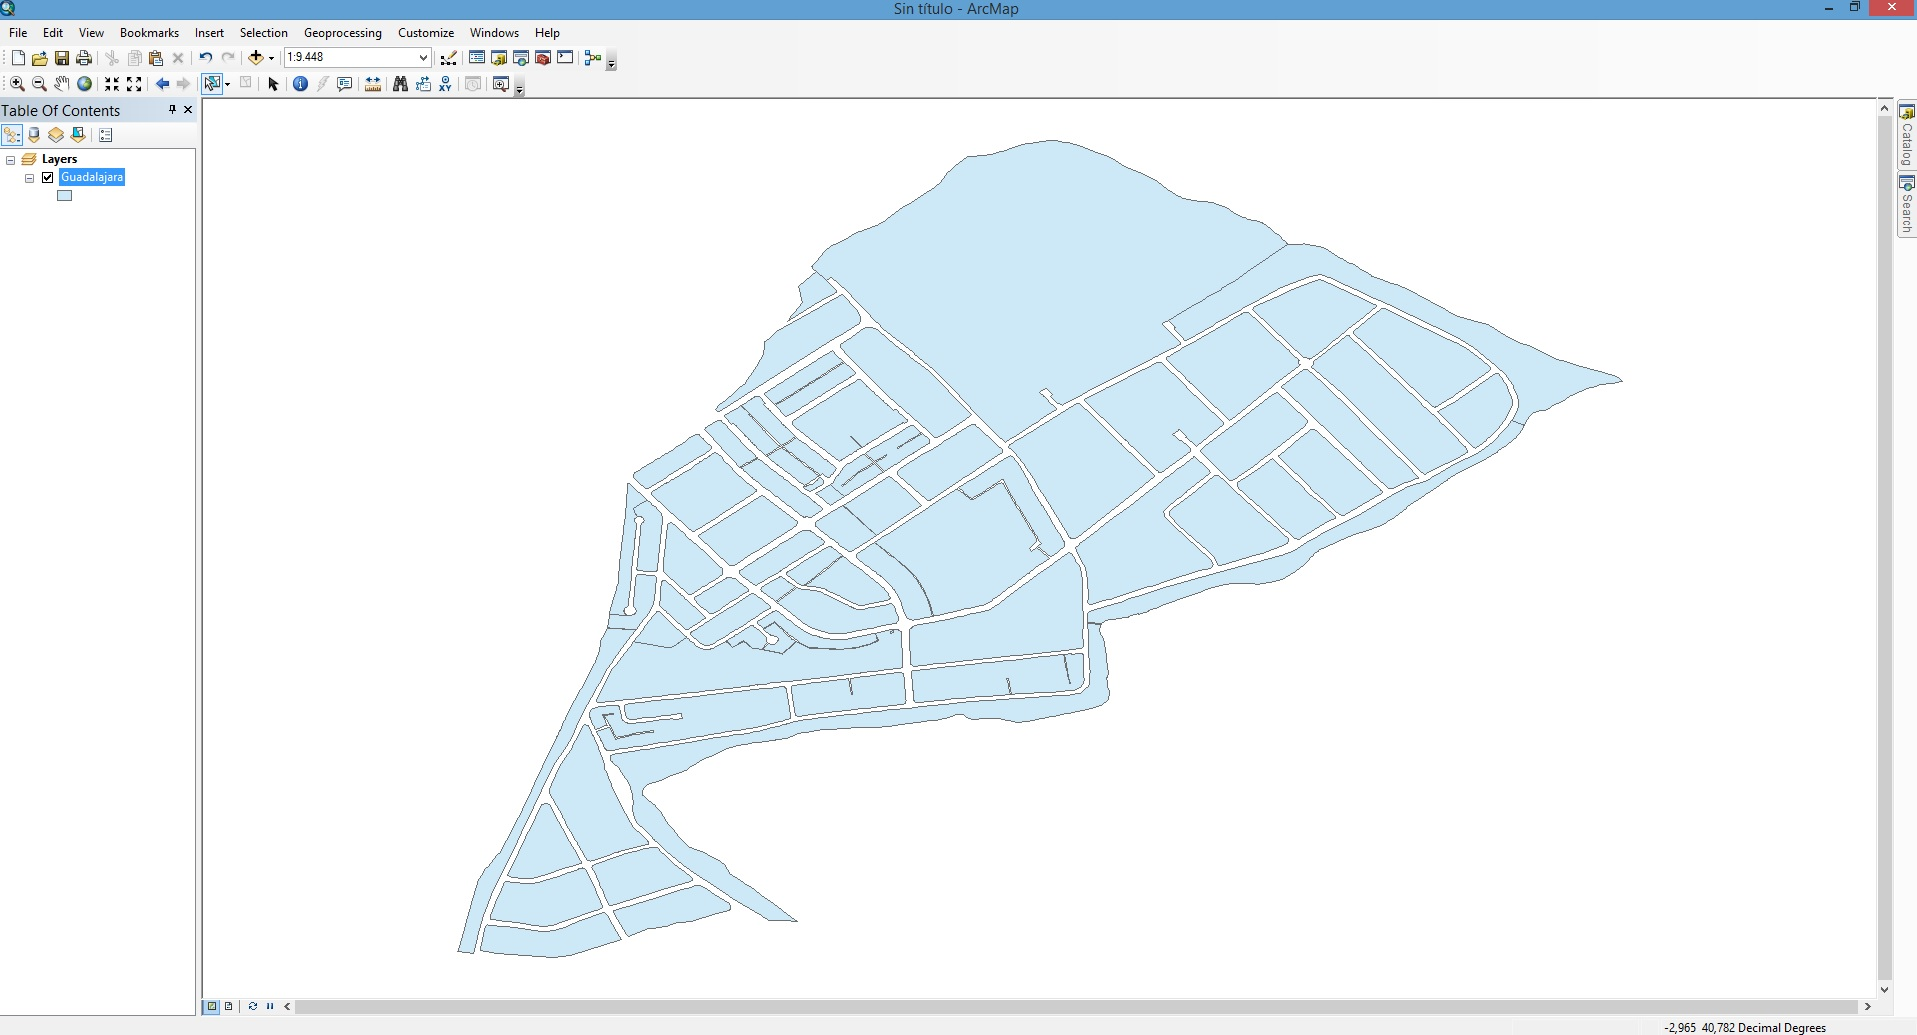 arcgis_to_kml